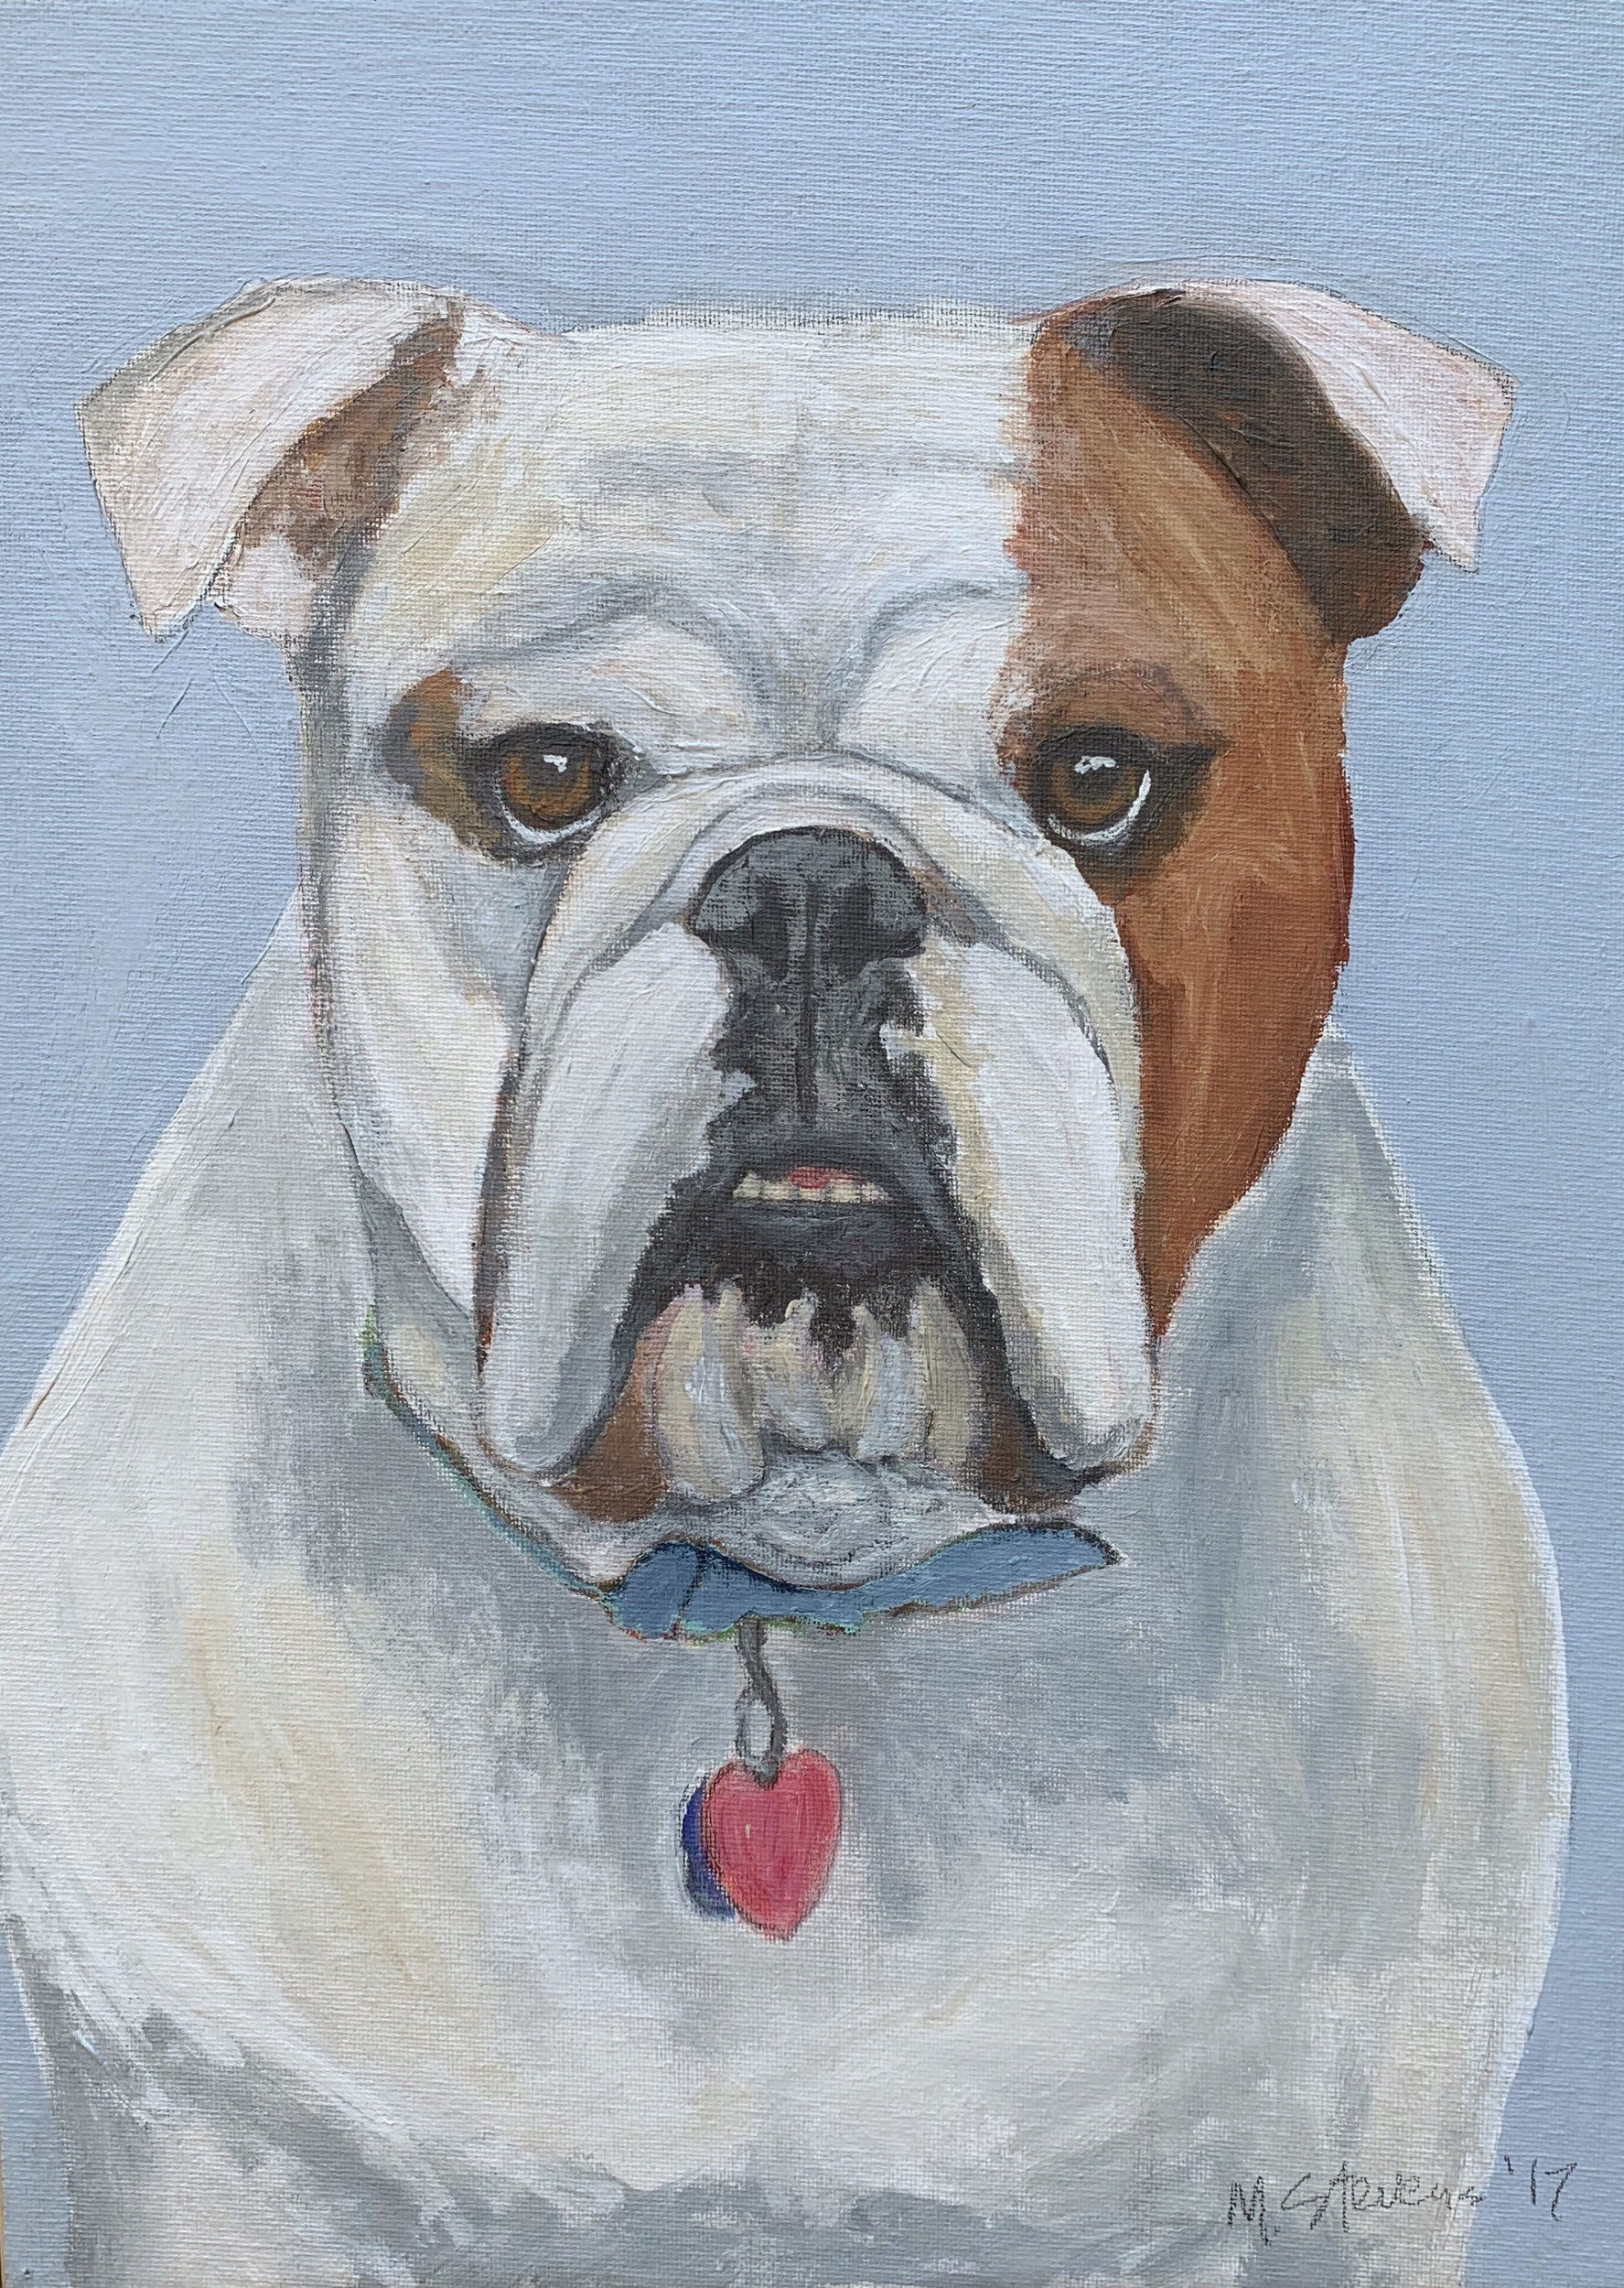 My Therapy Dog #15   Acrylic  12w 16h